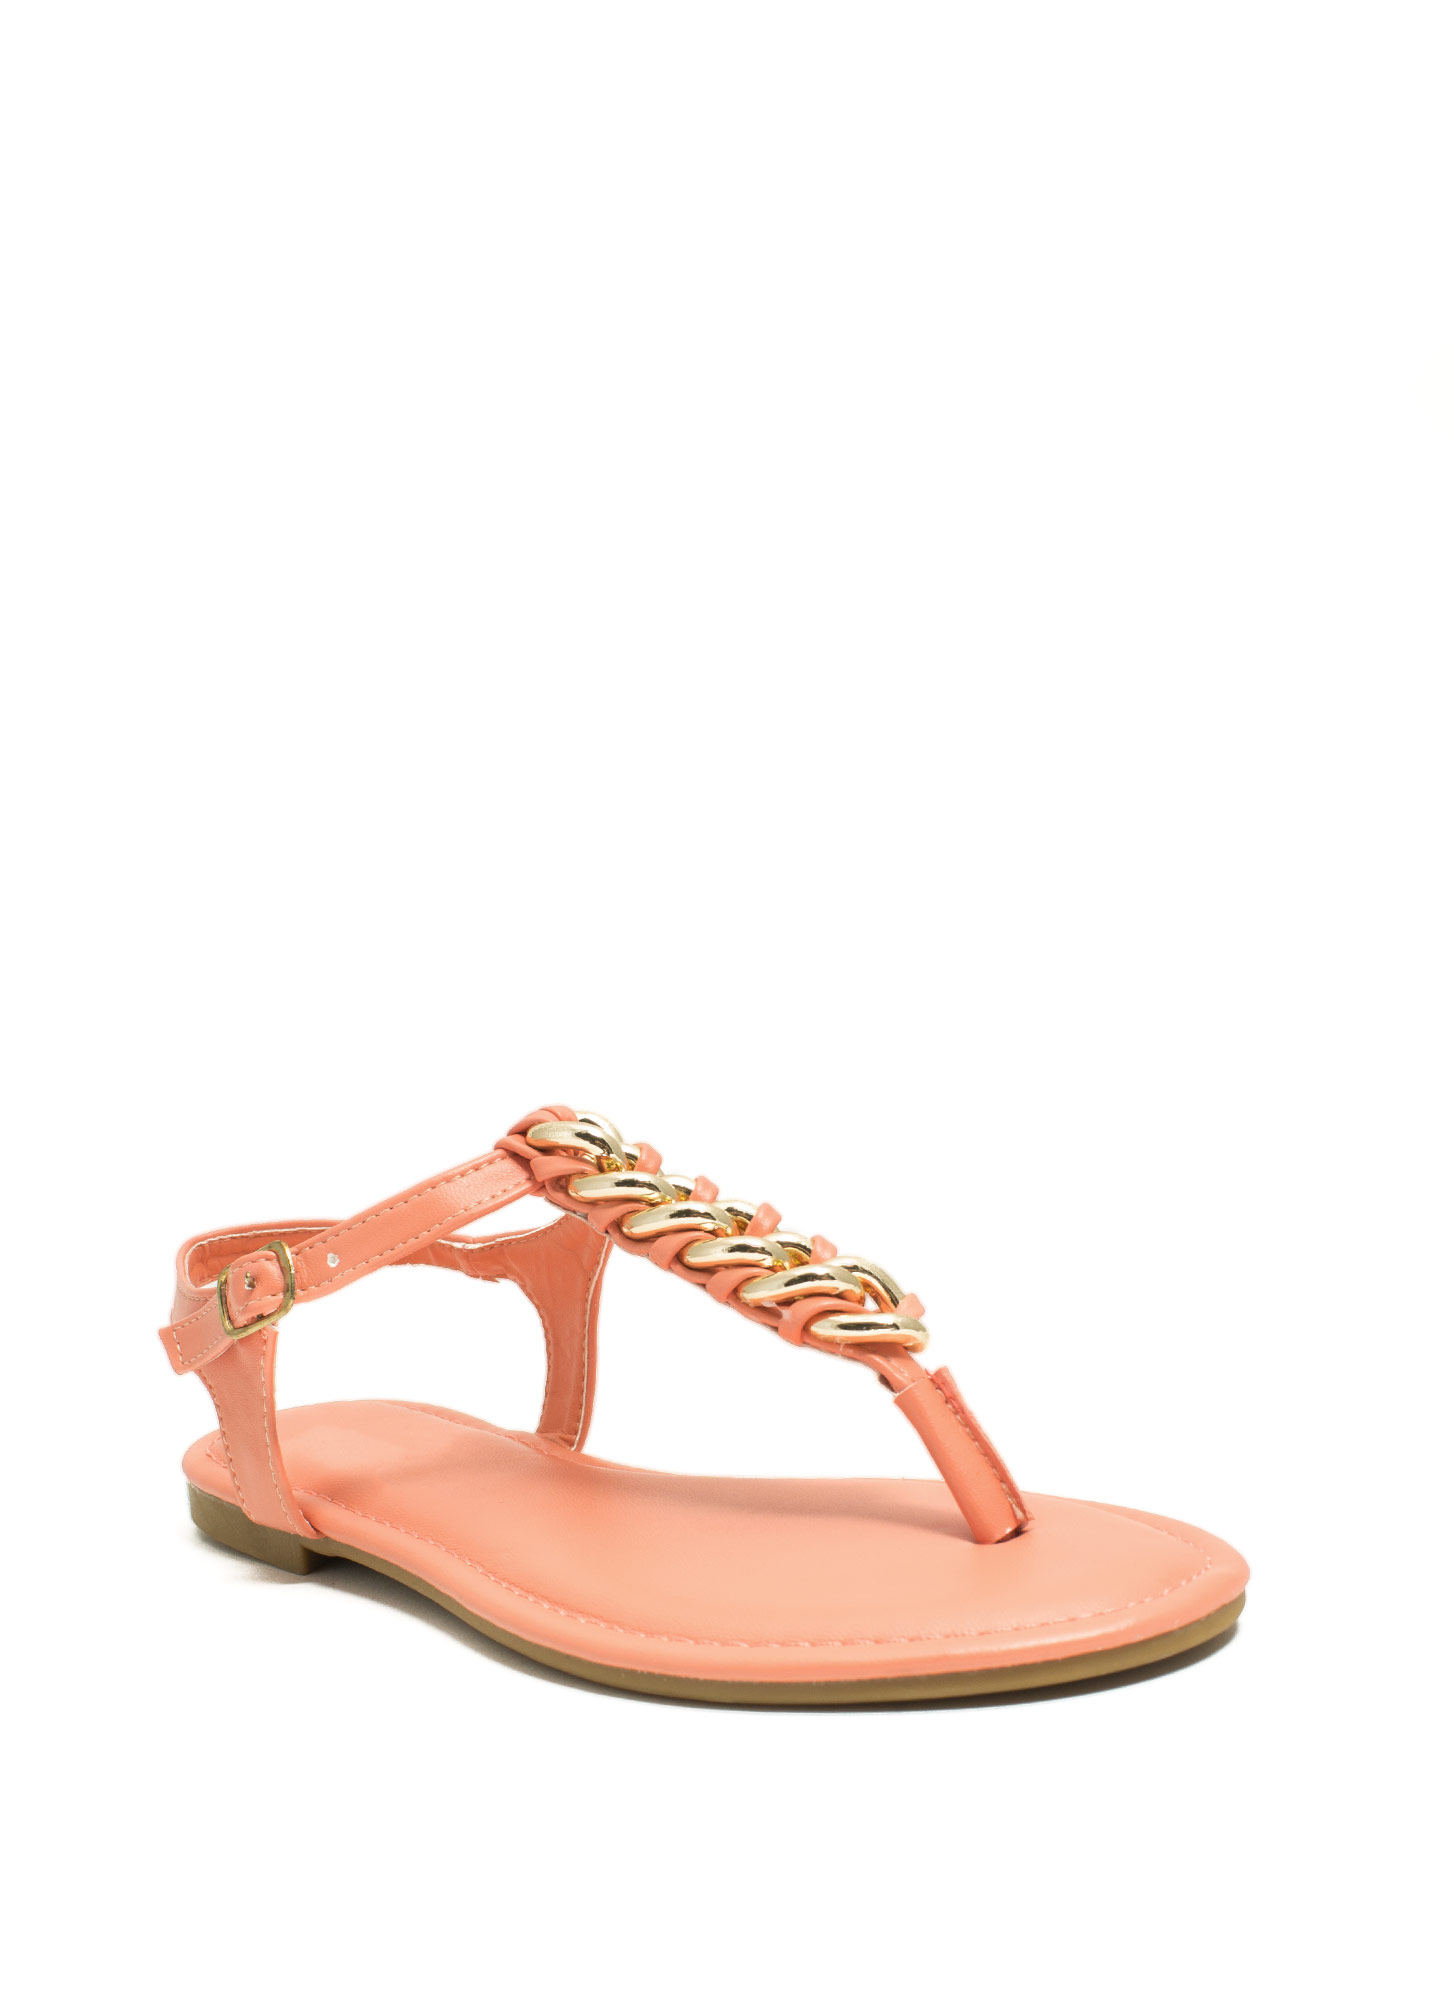 Braided Chains T-Strap Sandals CORAL